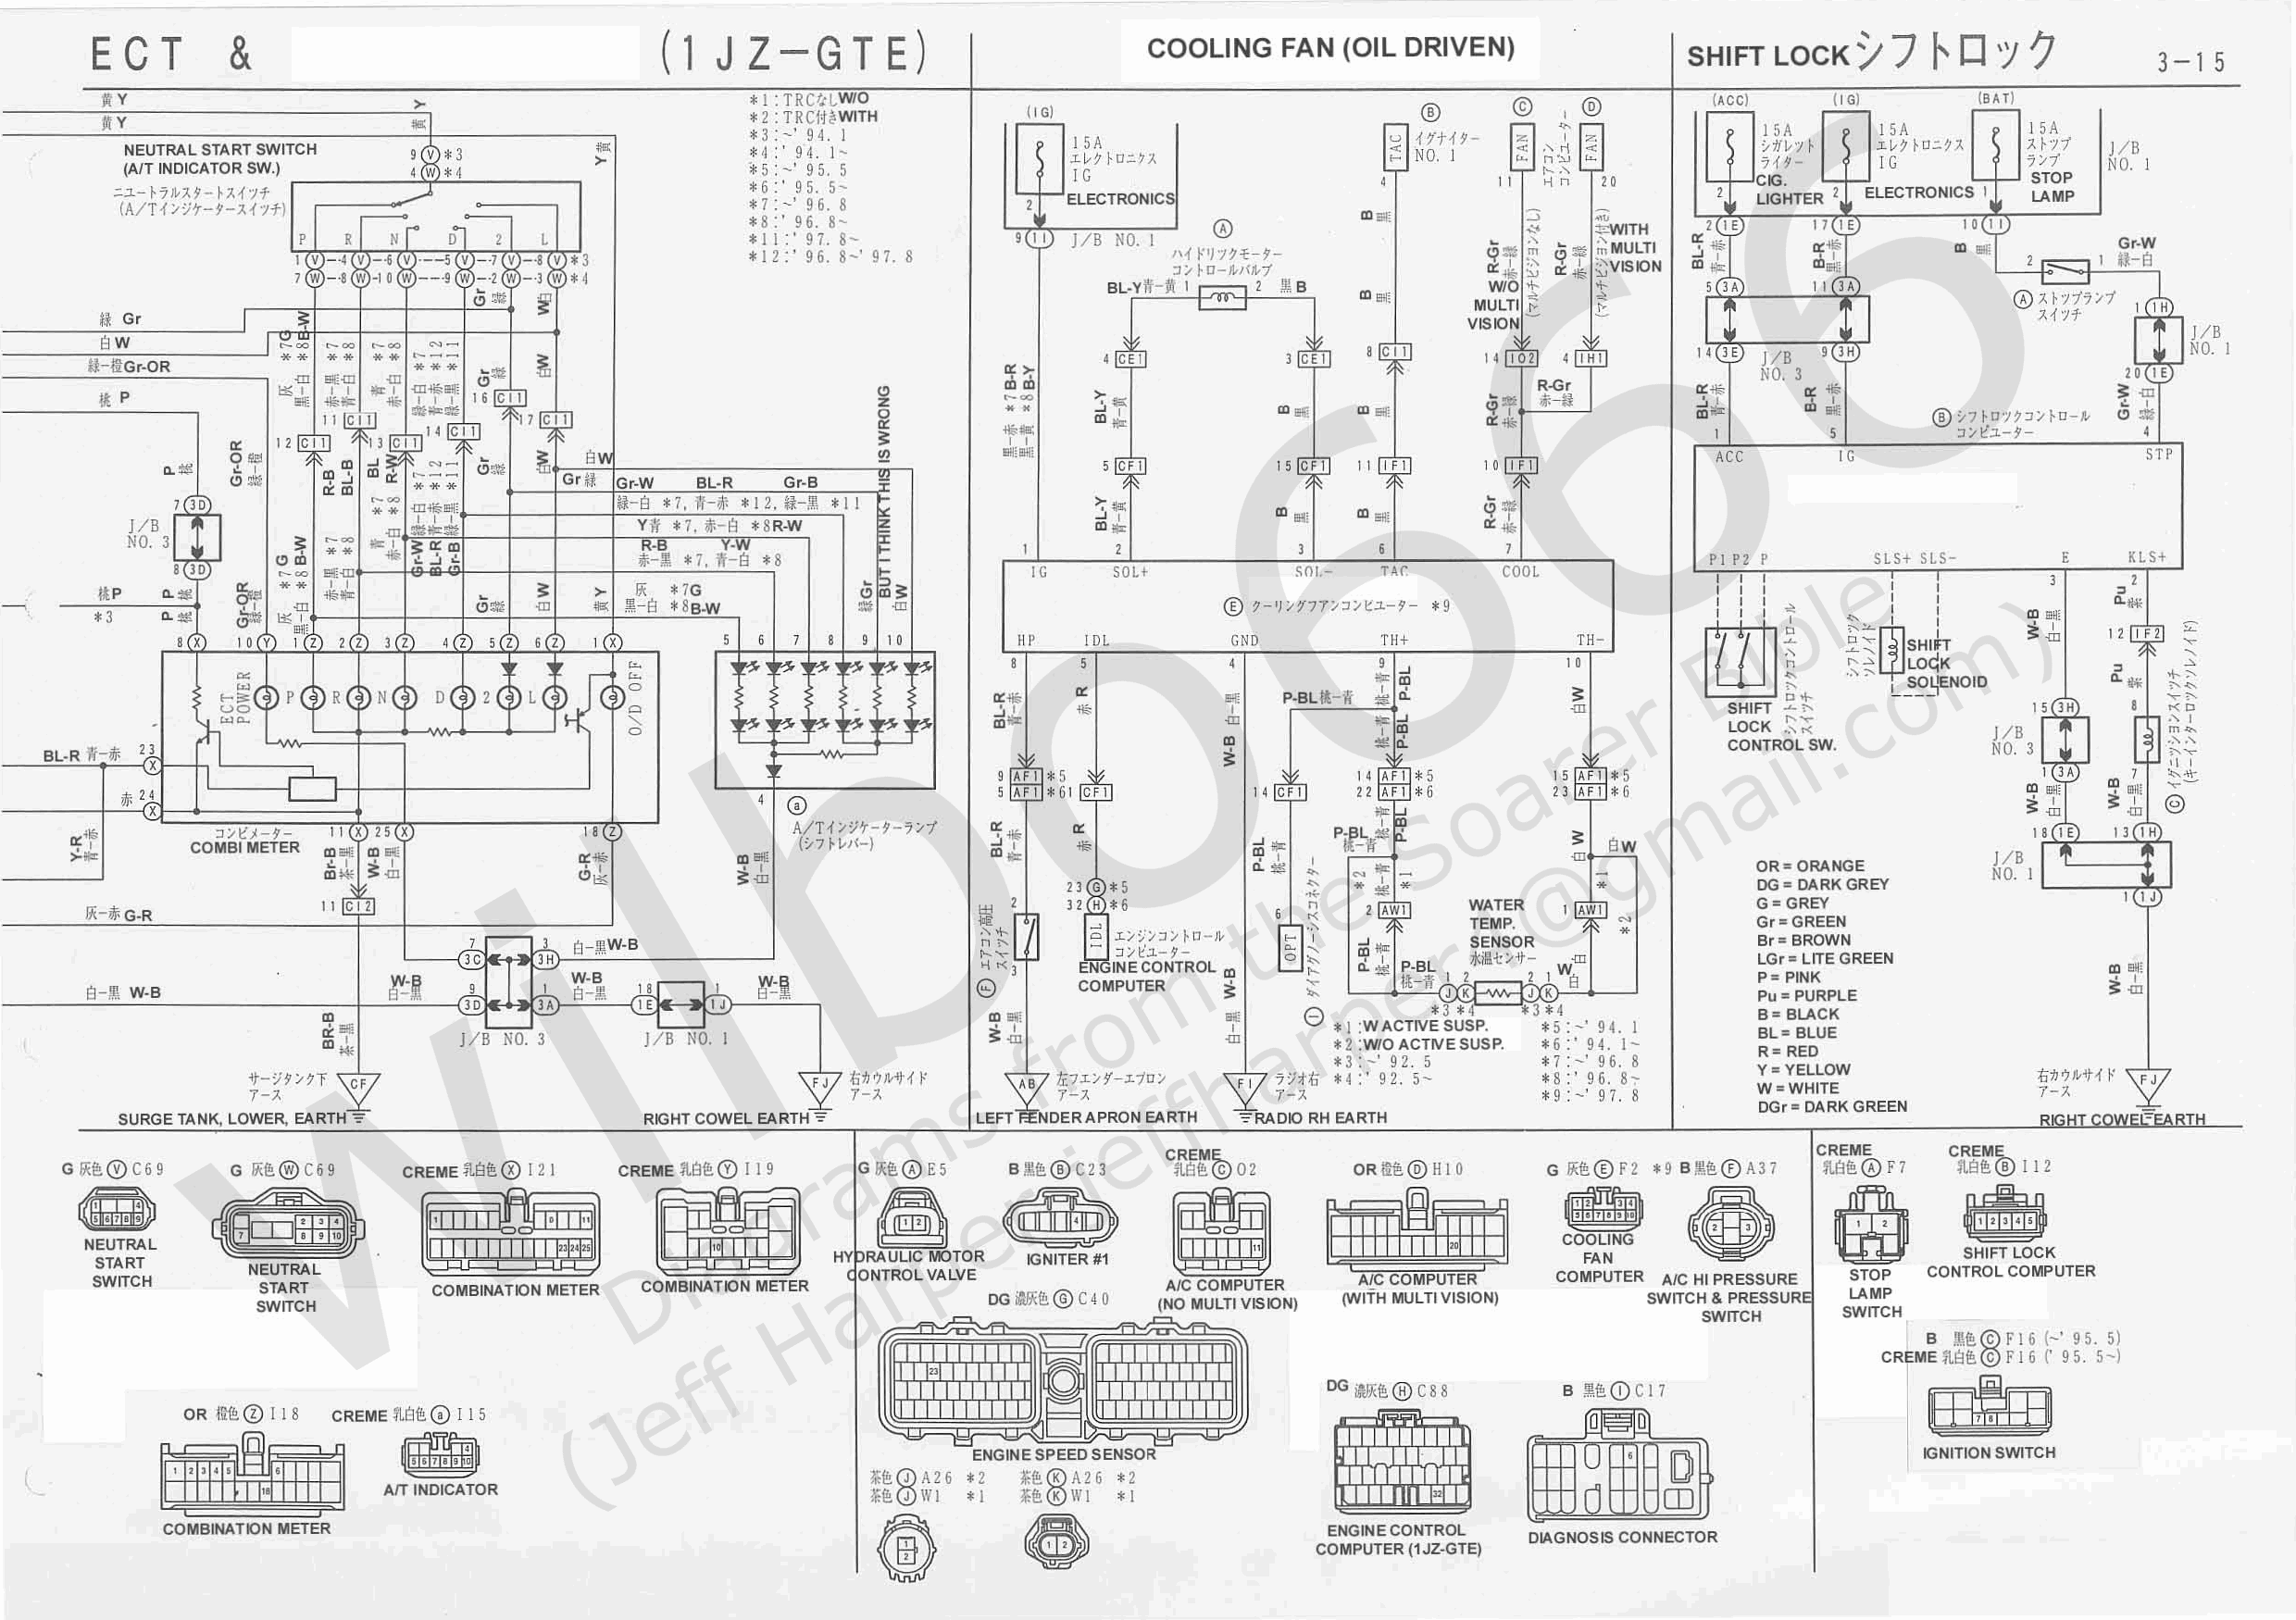 1jz Gte Wiring Diagram 22 Images Diagrams Denso Alternator Free Picture Xzz3x Electrical 6737105 3 15 Voltage Regulator